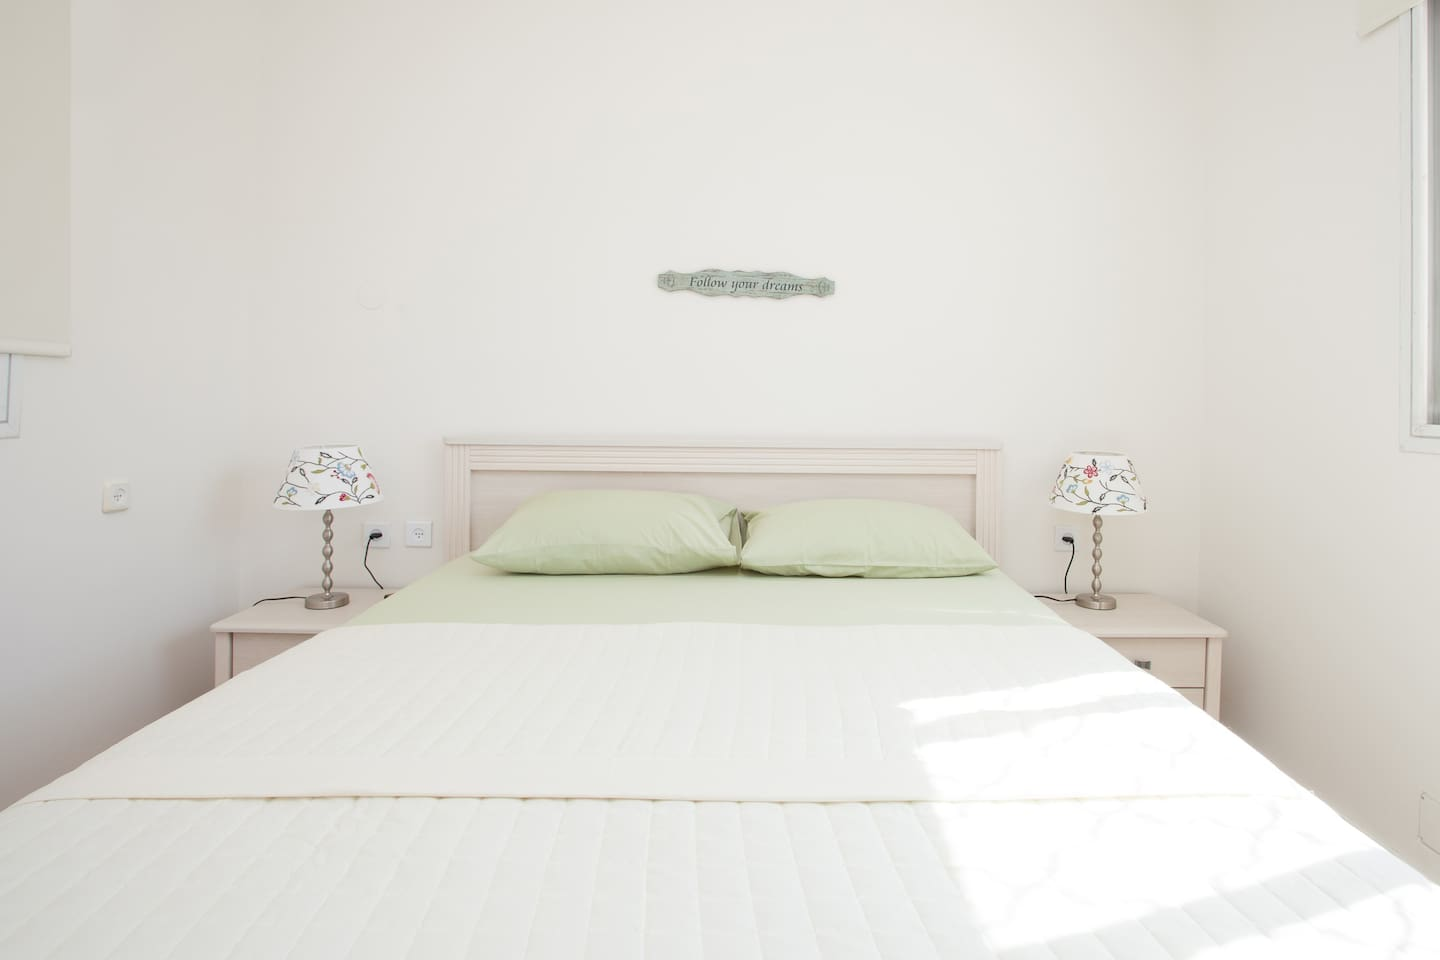 A comfortable queen size bed is waiting for you